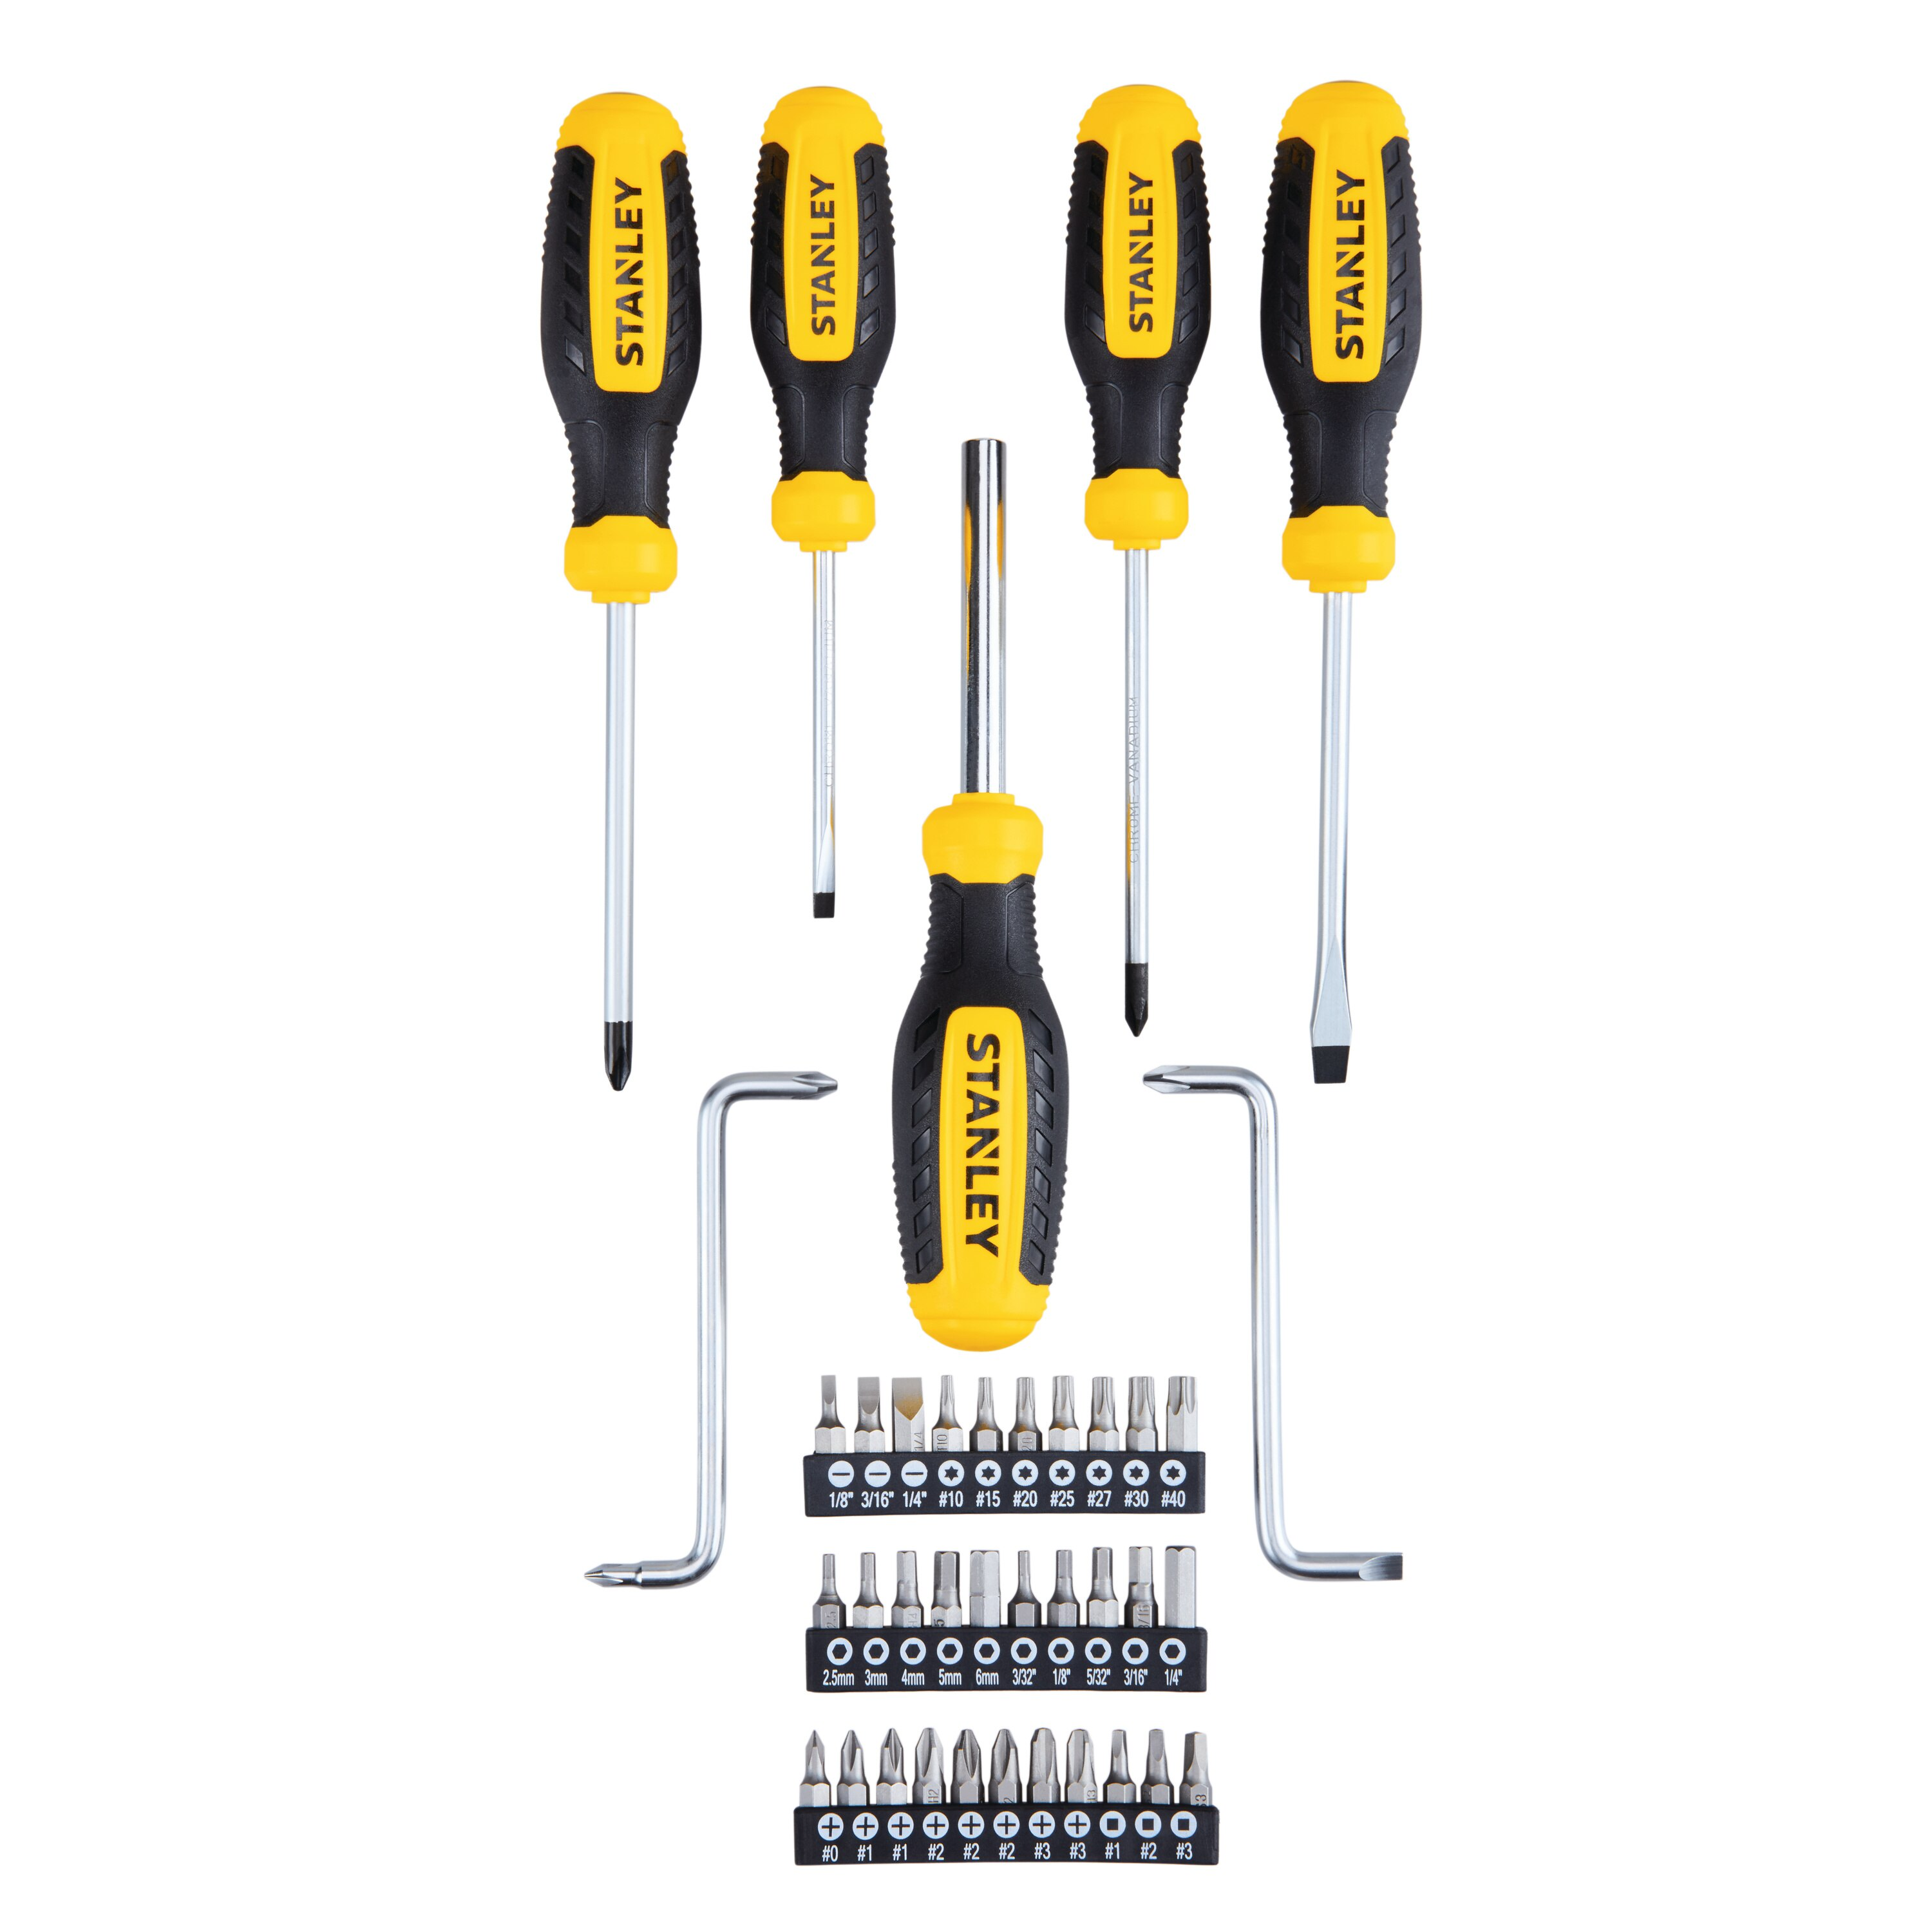 Stanley Tools - 38 pc Screwdriver Set - STHT60125